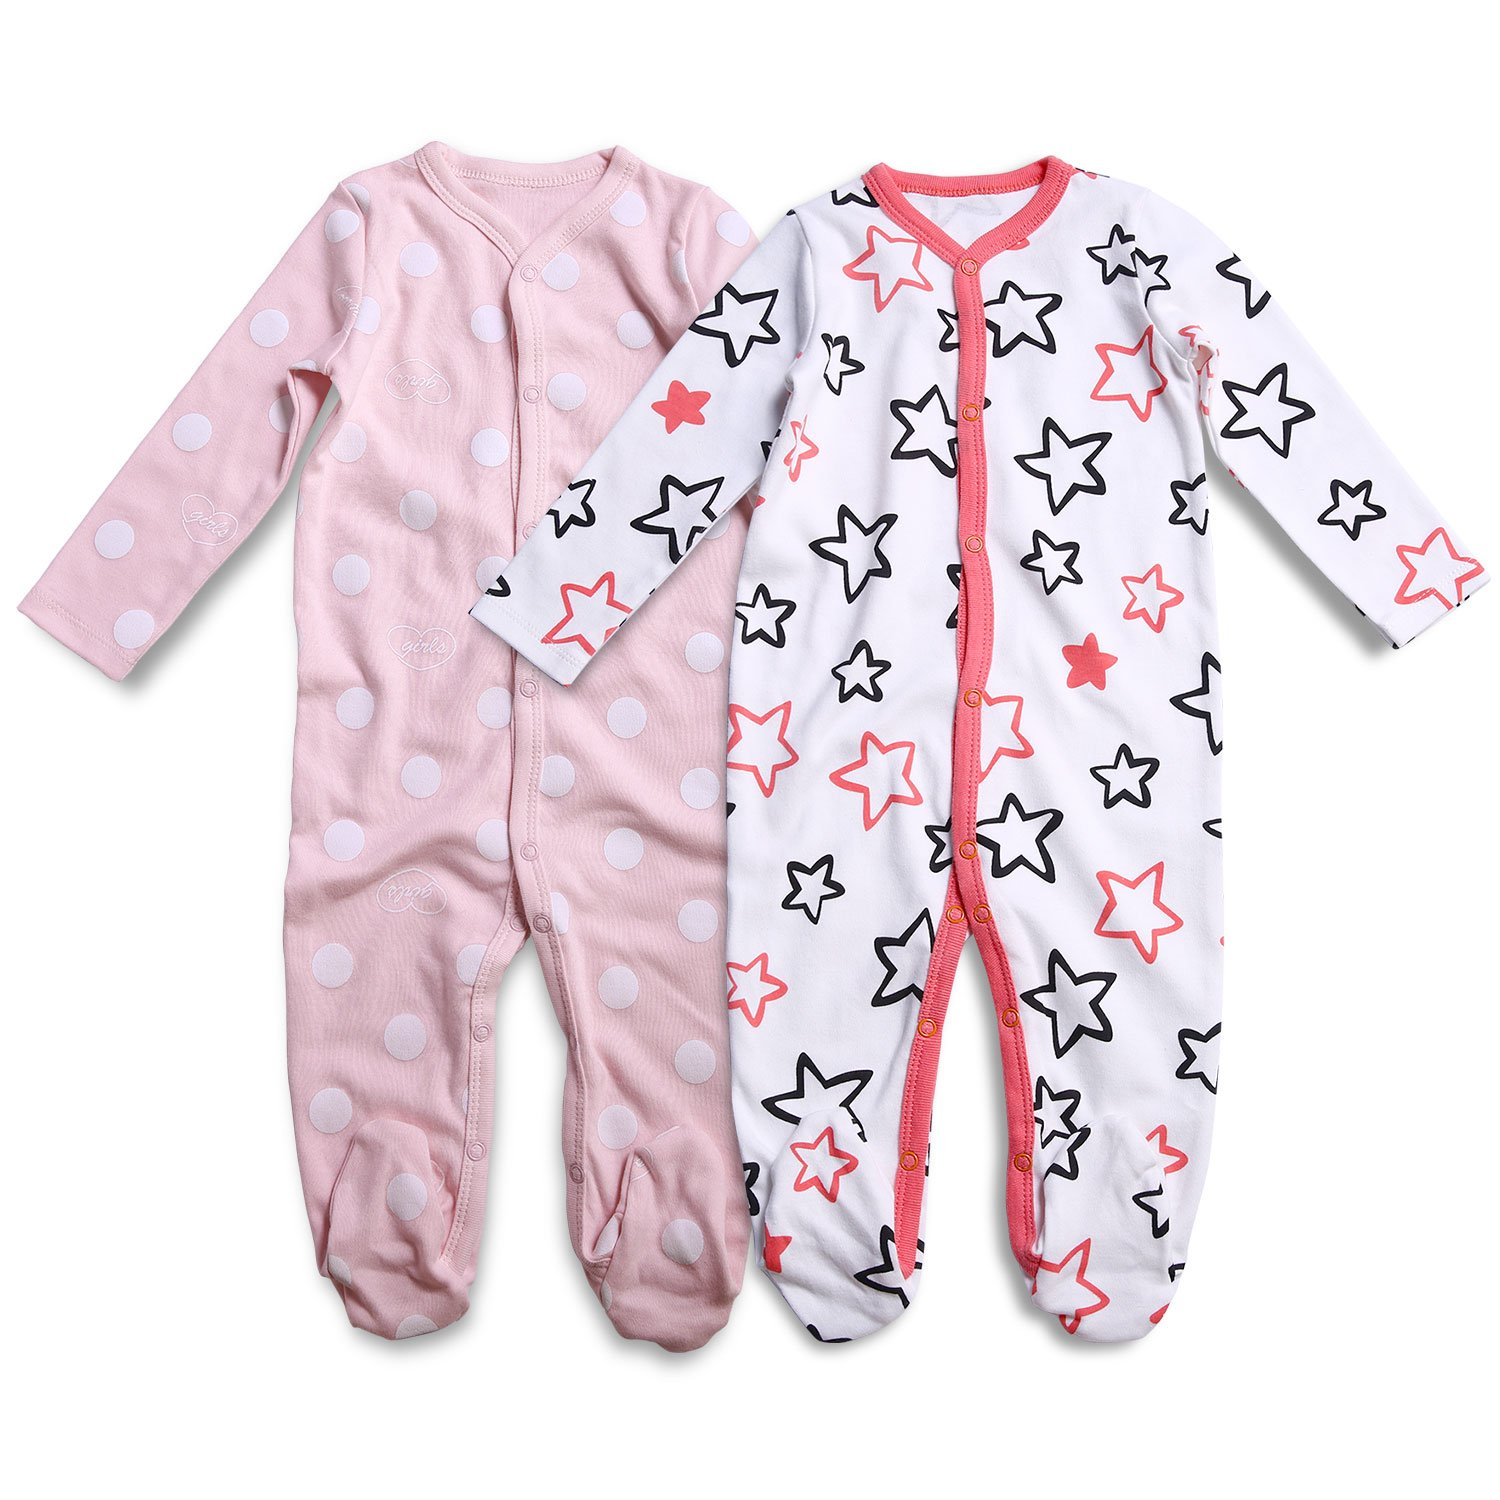 OPAWO Baby Girls 2-Pack Footed Sleeper Pajamas Long Sleeved 6-9 Months White Polka/Stars) OPYJ8845OCPG0129